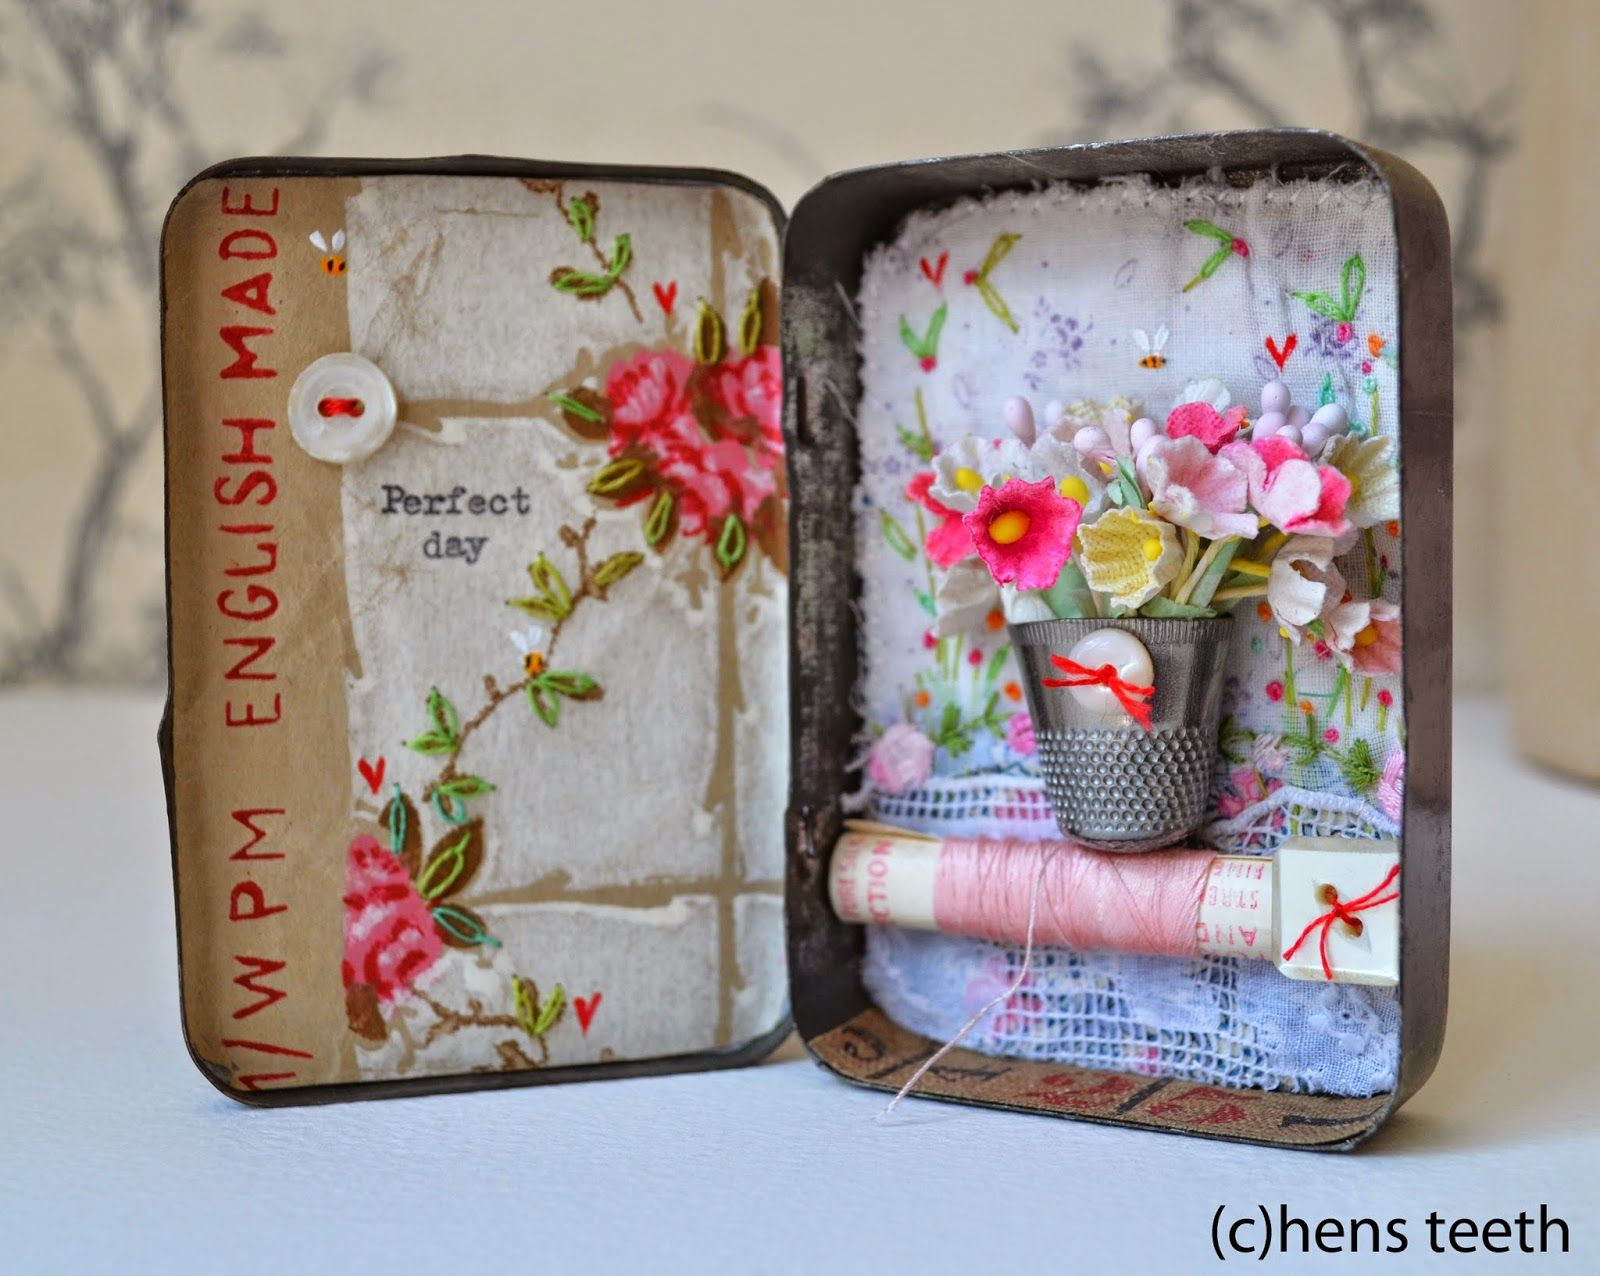 hens teeth - paper flowers in a thimble with a button - oh my!